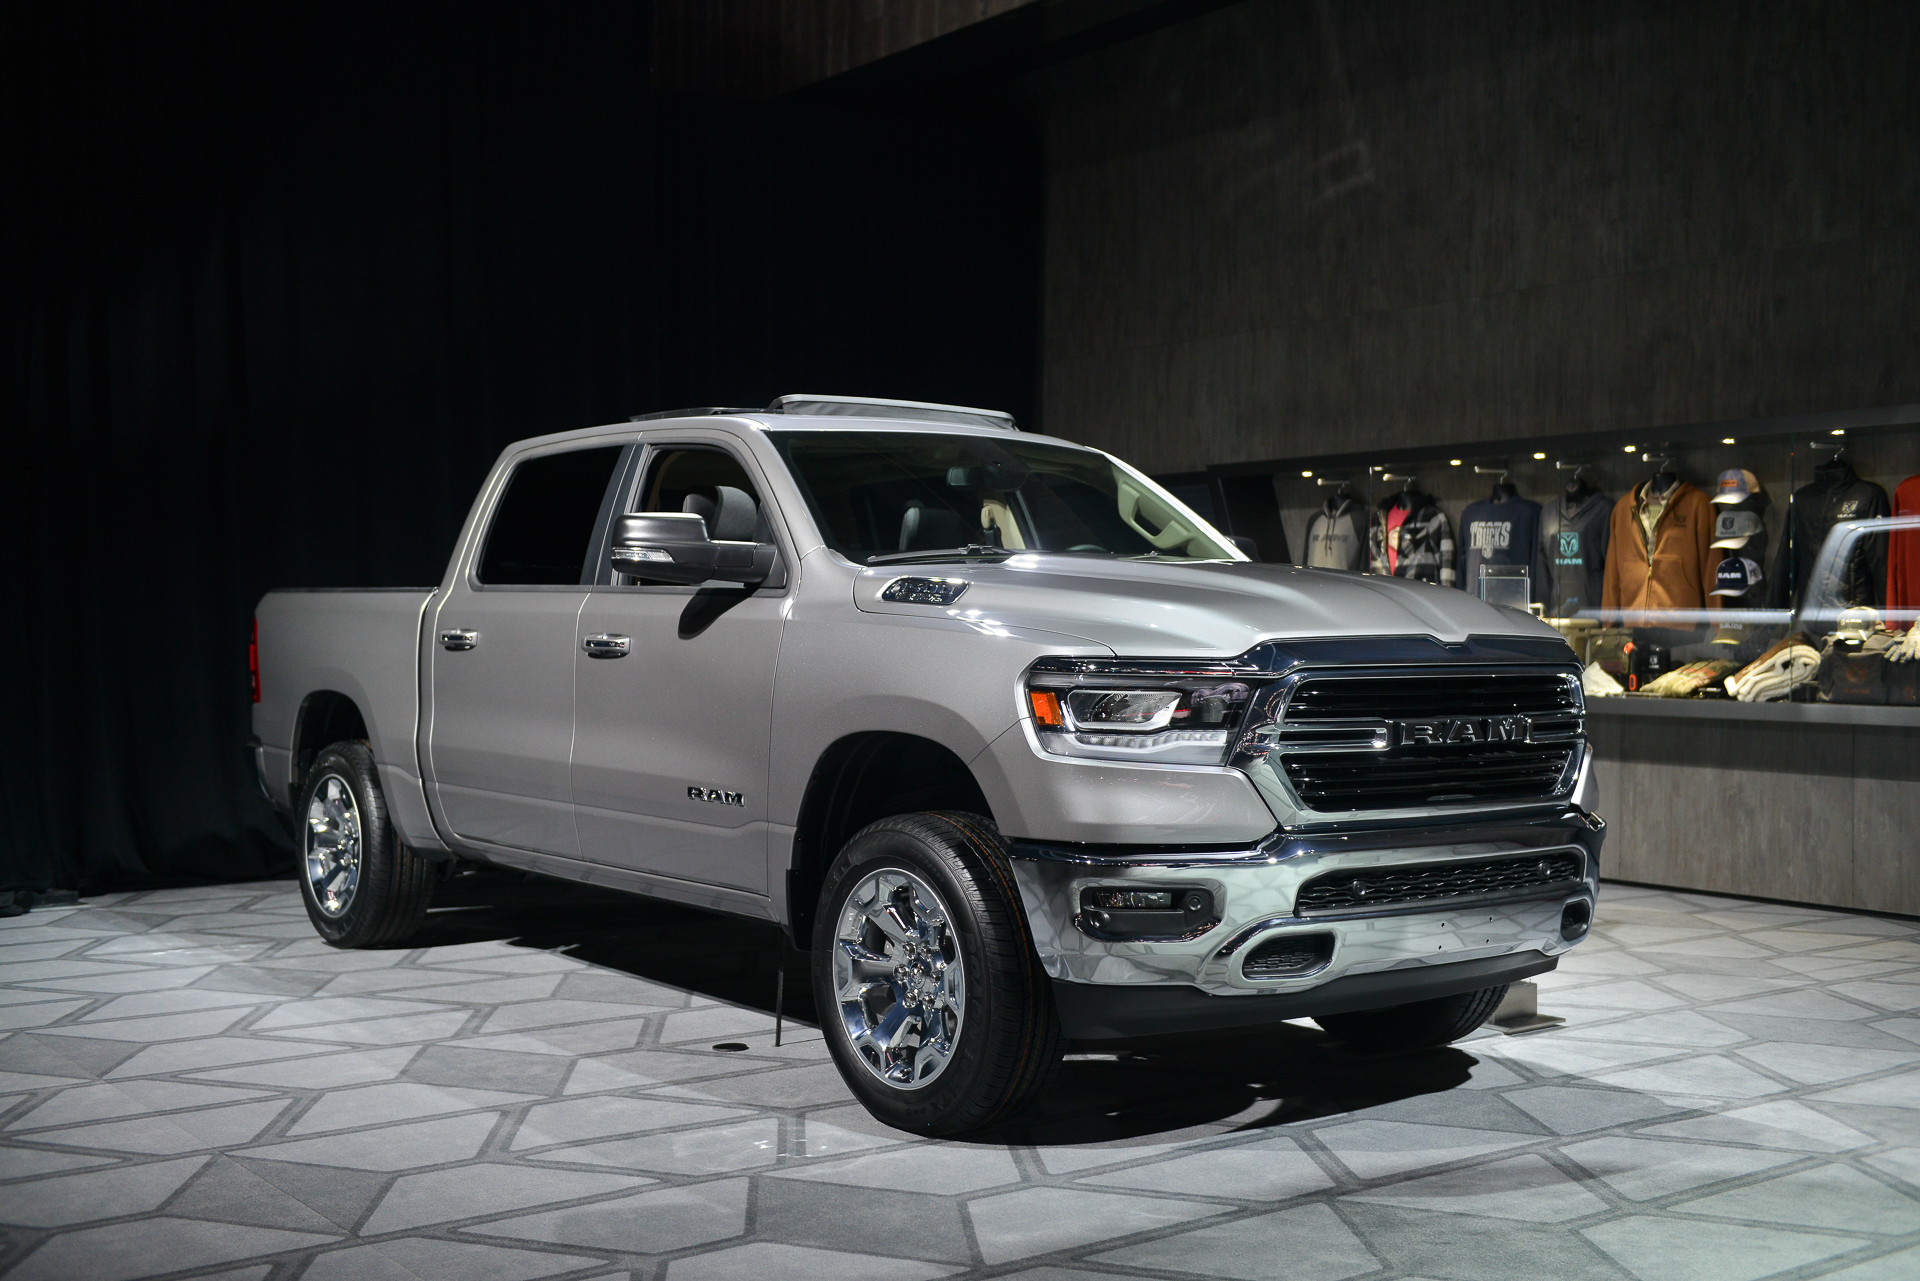 67 The 2019 Dodge Ram 2500 Cummins Price